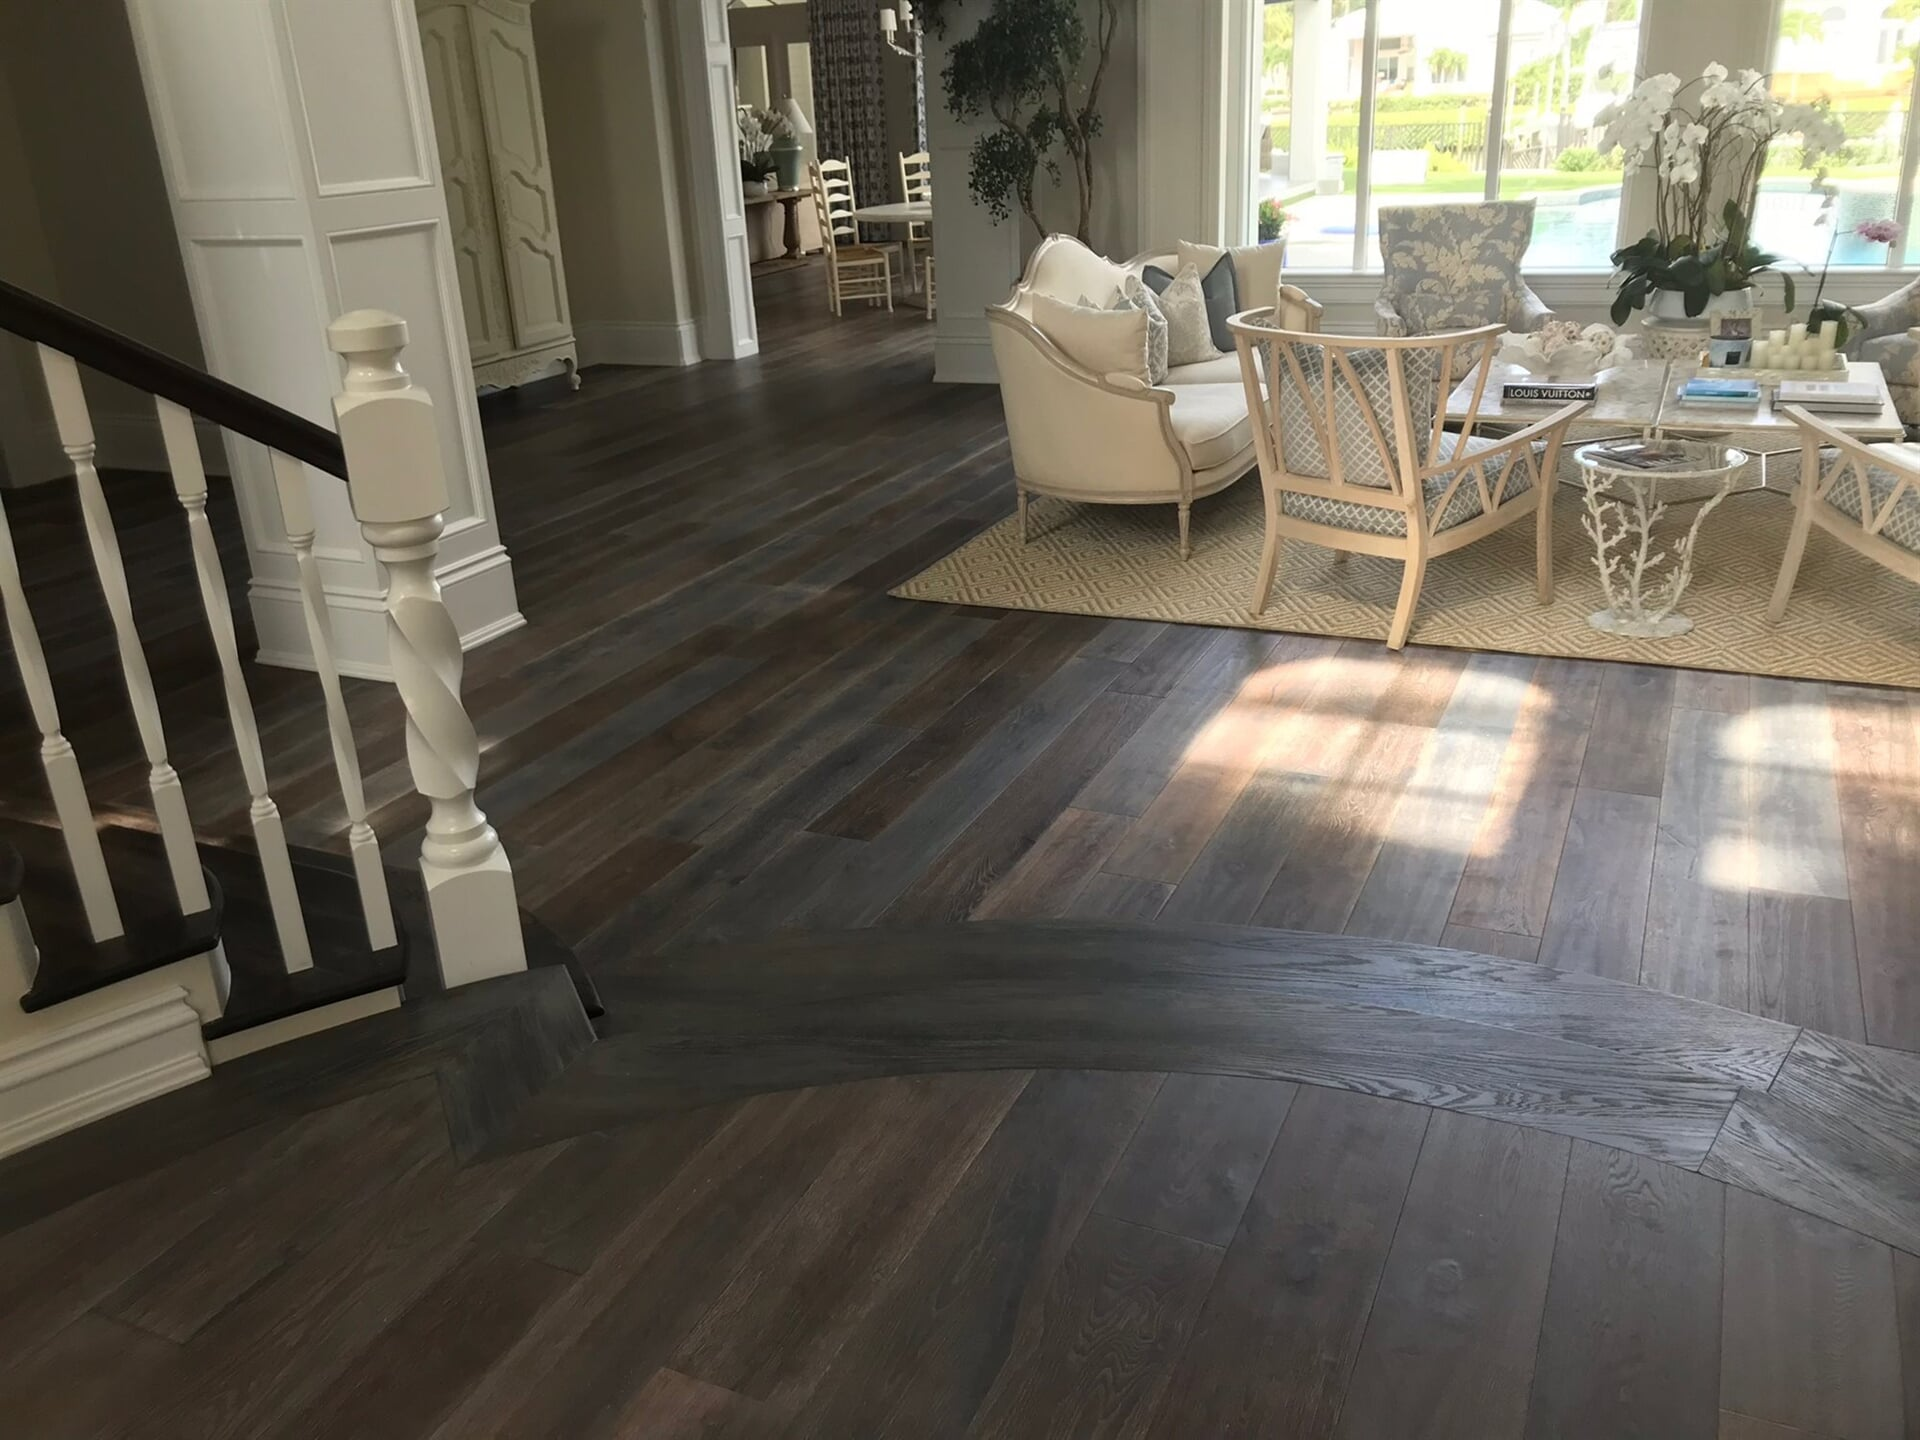 Custom flooring installation in West Palm Beach, FL from Floors For You Kitchen & Bath